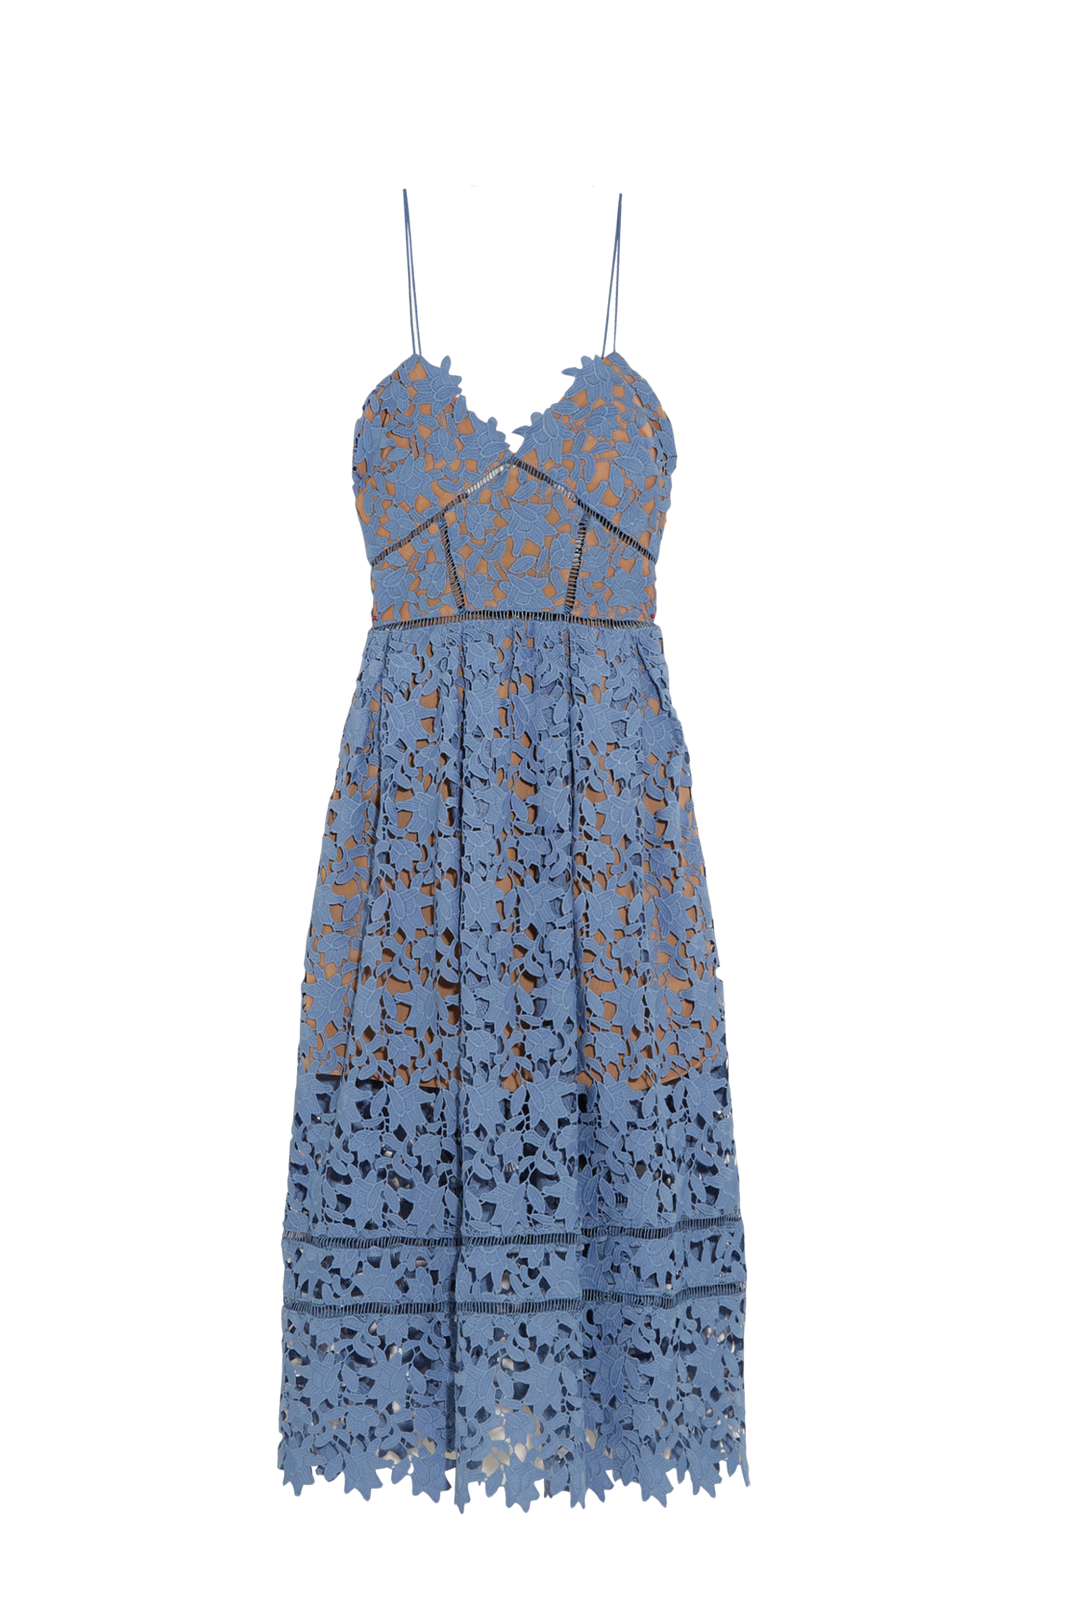 Azaelea Blue Dress